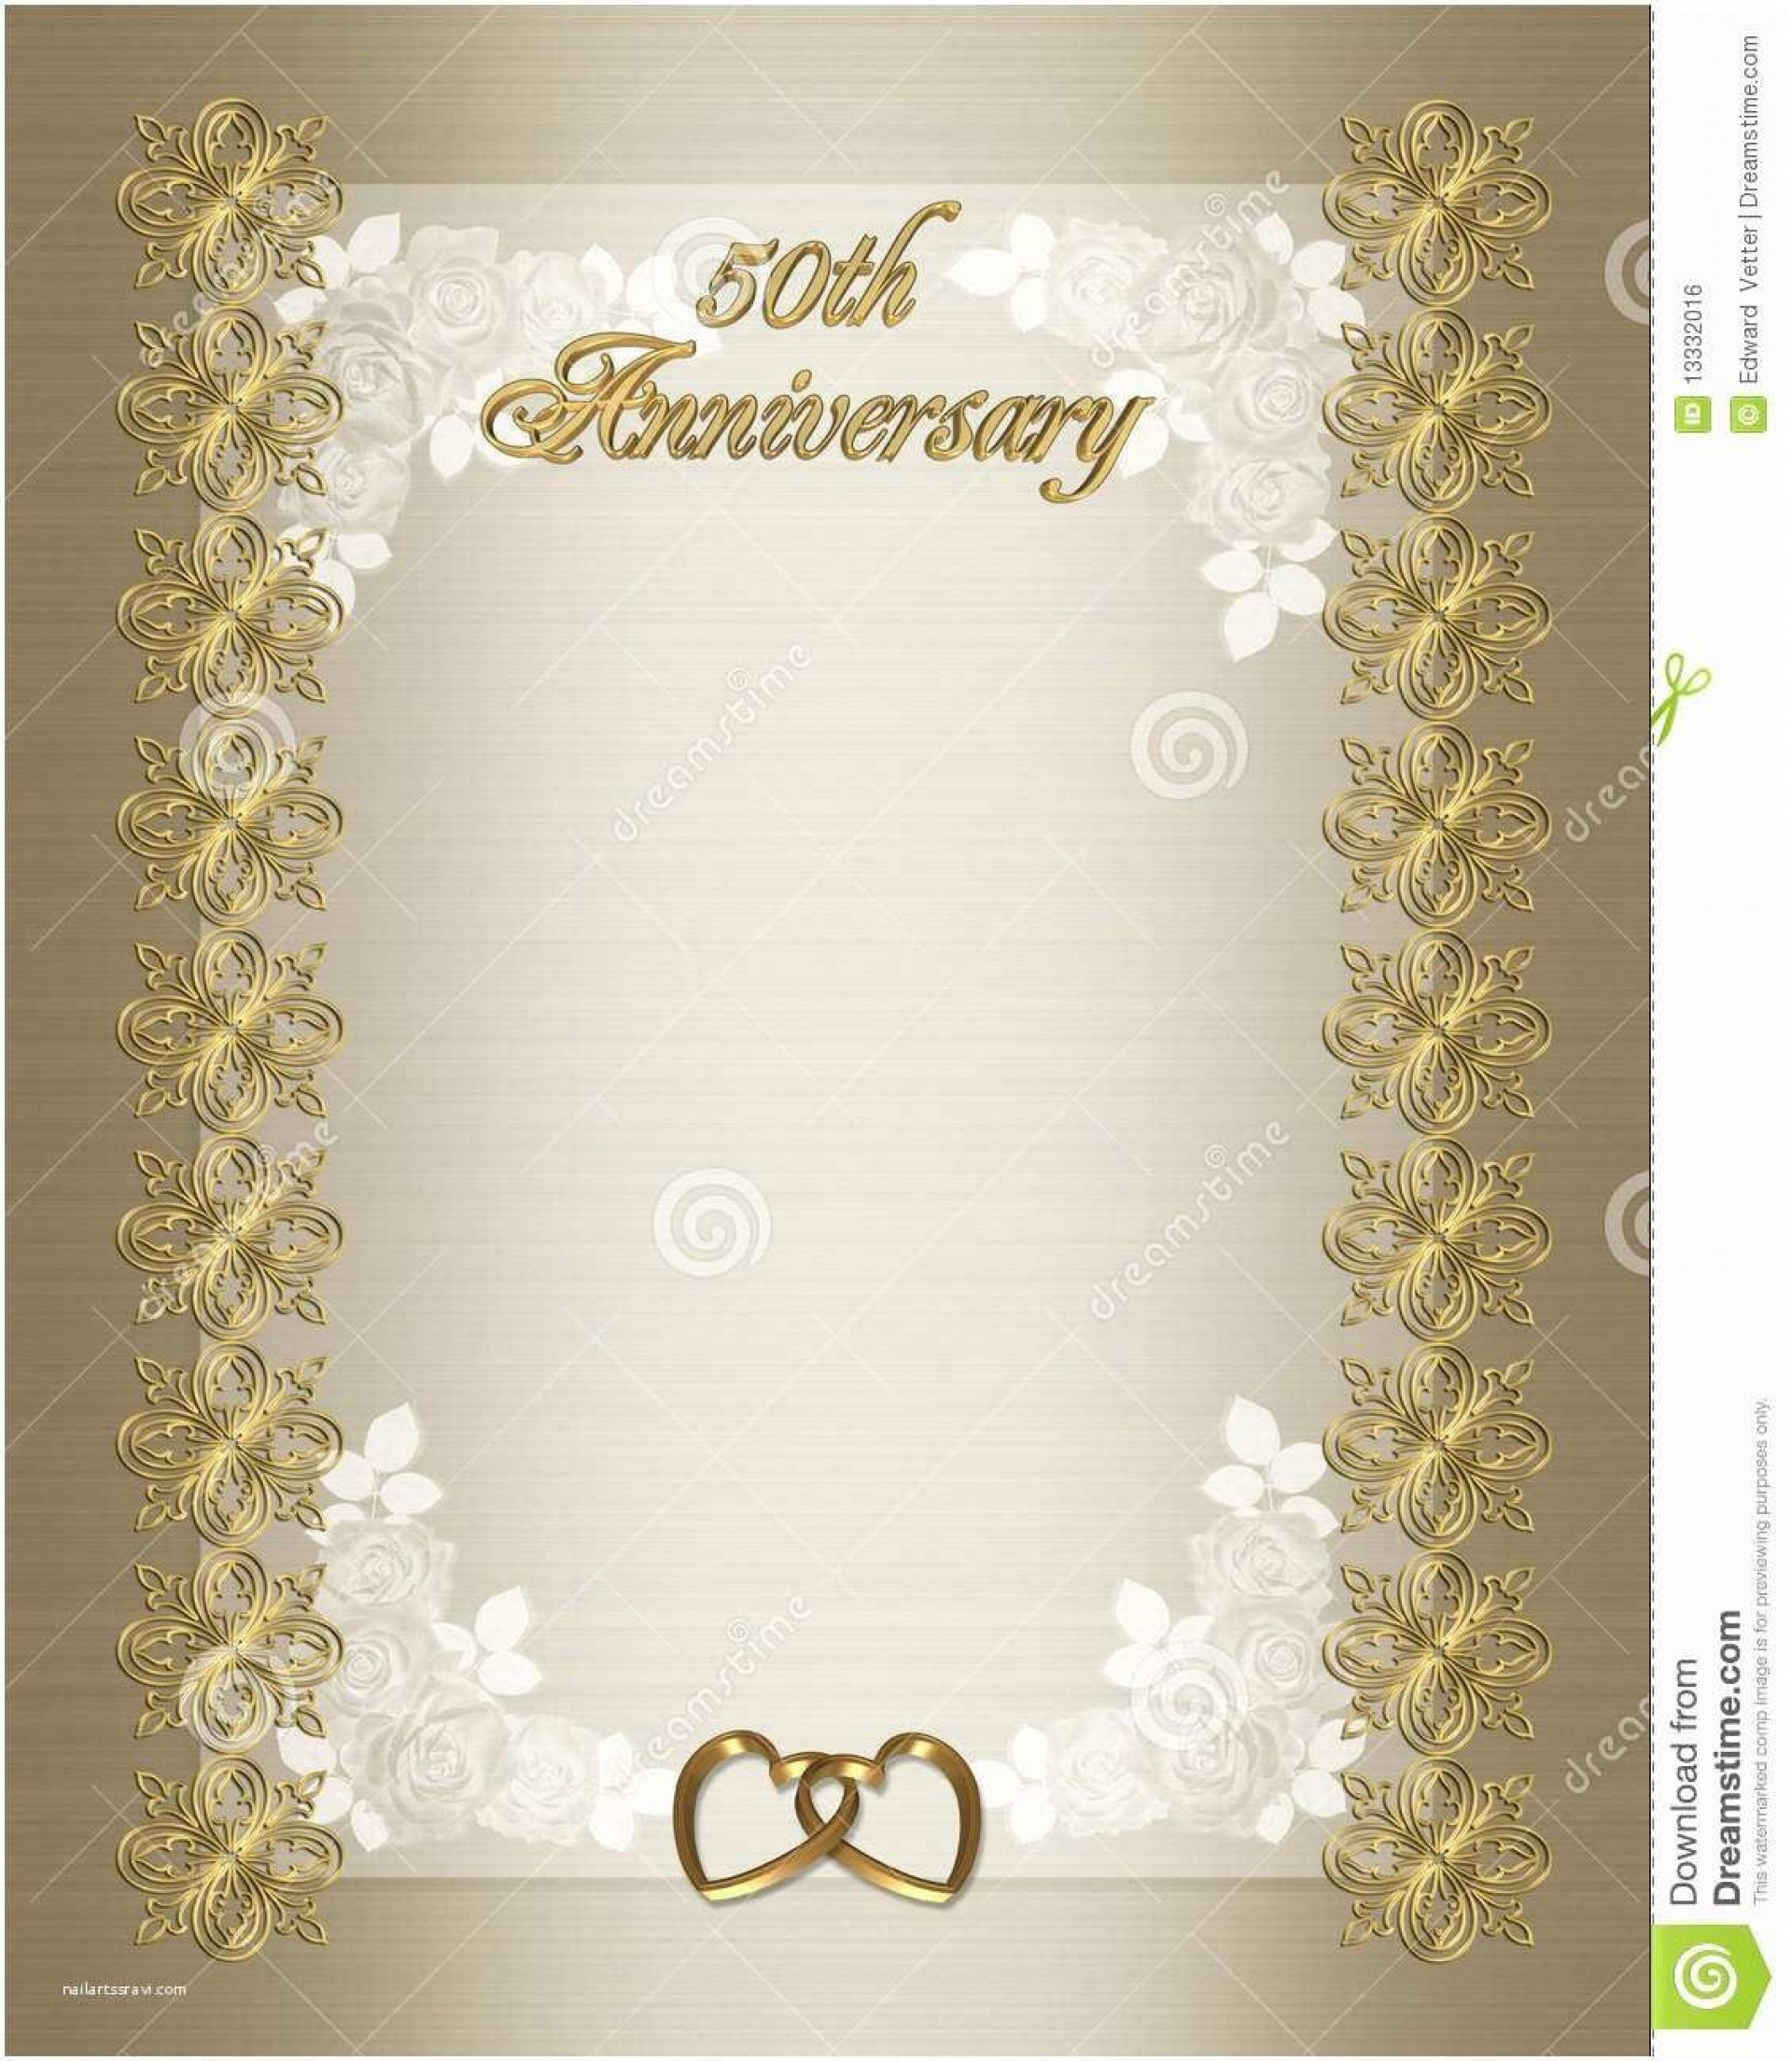 005 Remarkable 50th Anniversary Invitation Template Sample  Templates Wedding Free Download Golden1920